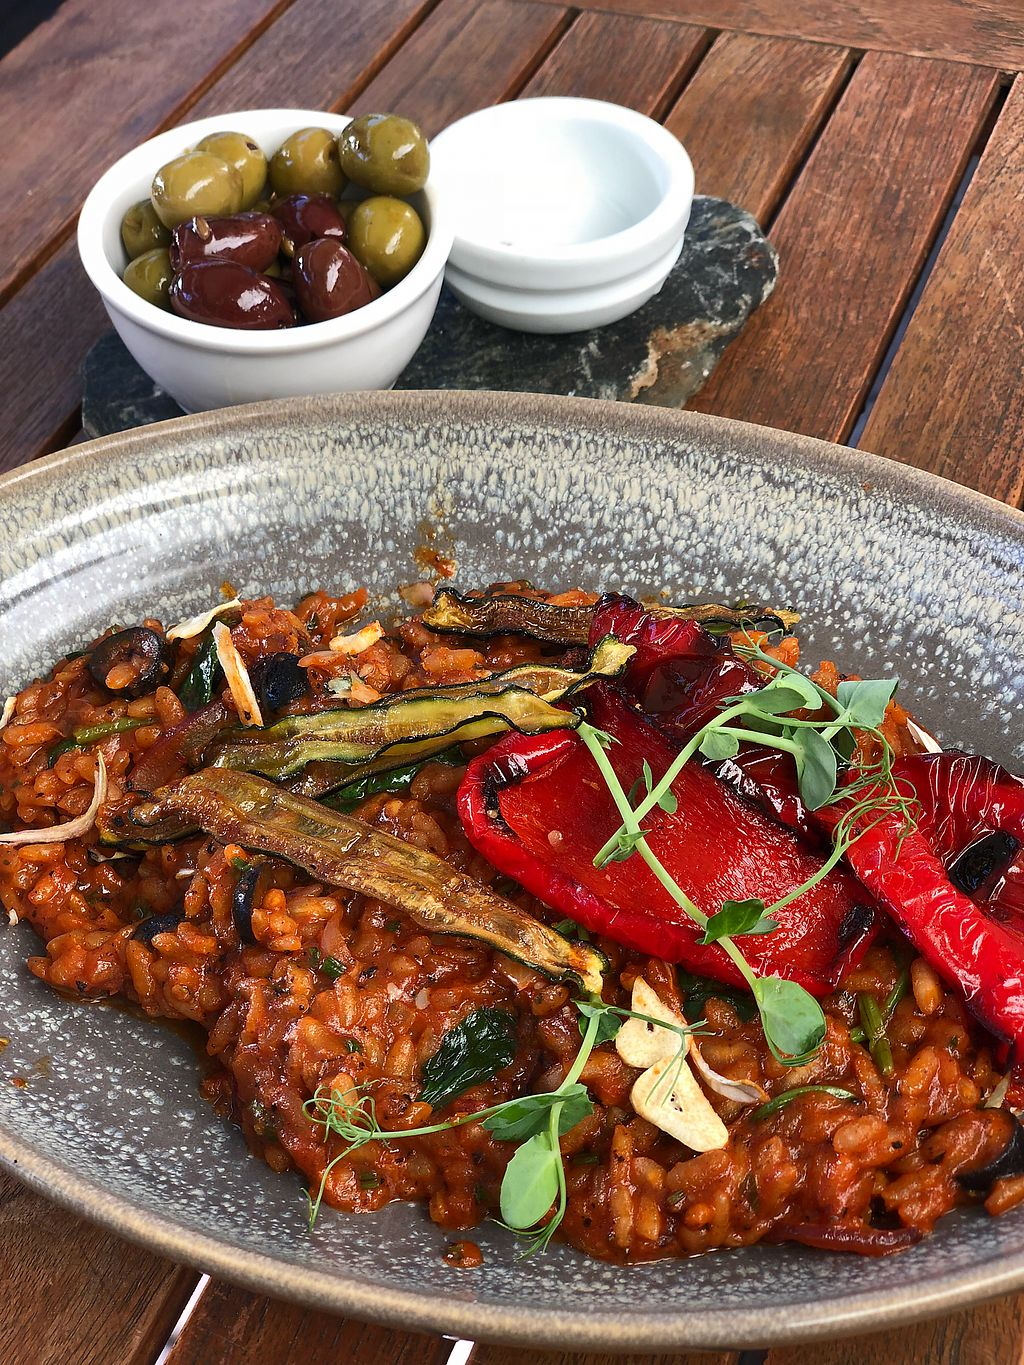 """Photo of Postmasters  by <a href=""""/members/profile/ben_eitel"""">ben_eitel</a> <br/>Roasted Capsicum Risotto with a side of olives  <br/> March 9, 2018  - <a href='/contact/abuse/image/69738/368350'>Report</a>"""